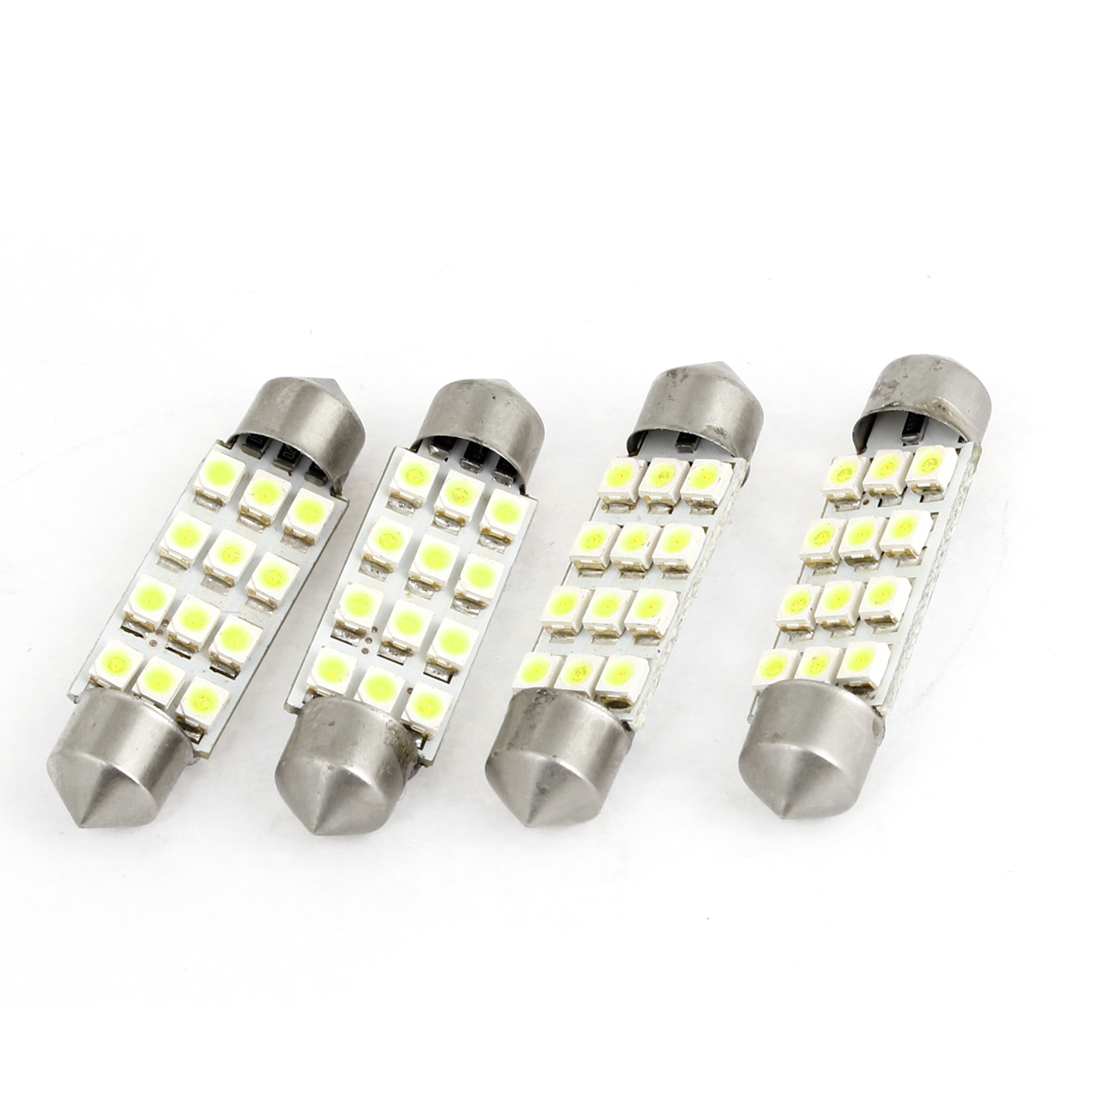 4 Pcs Vehicle Car White 12-LED 1210 SMD Festoon Light Roof Lamp Bulb 41mm